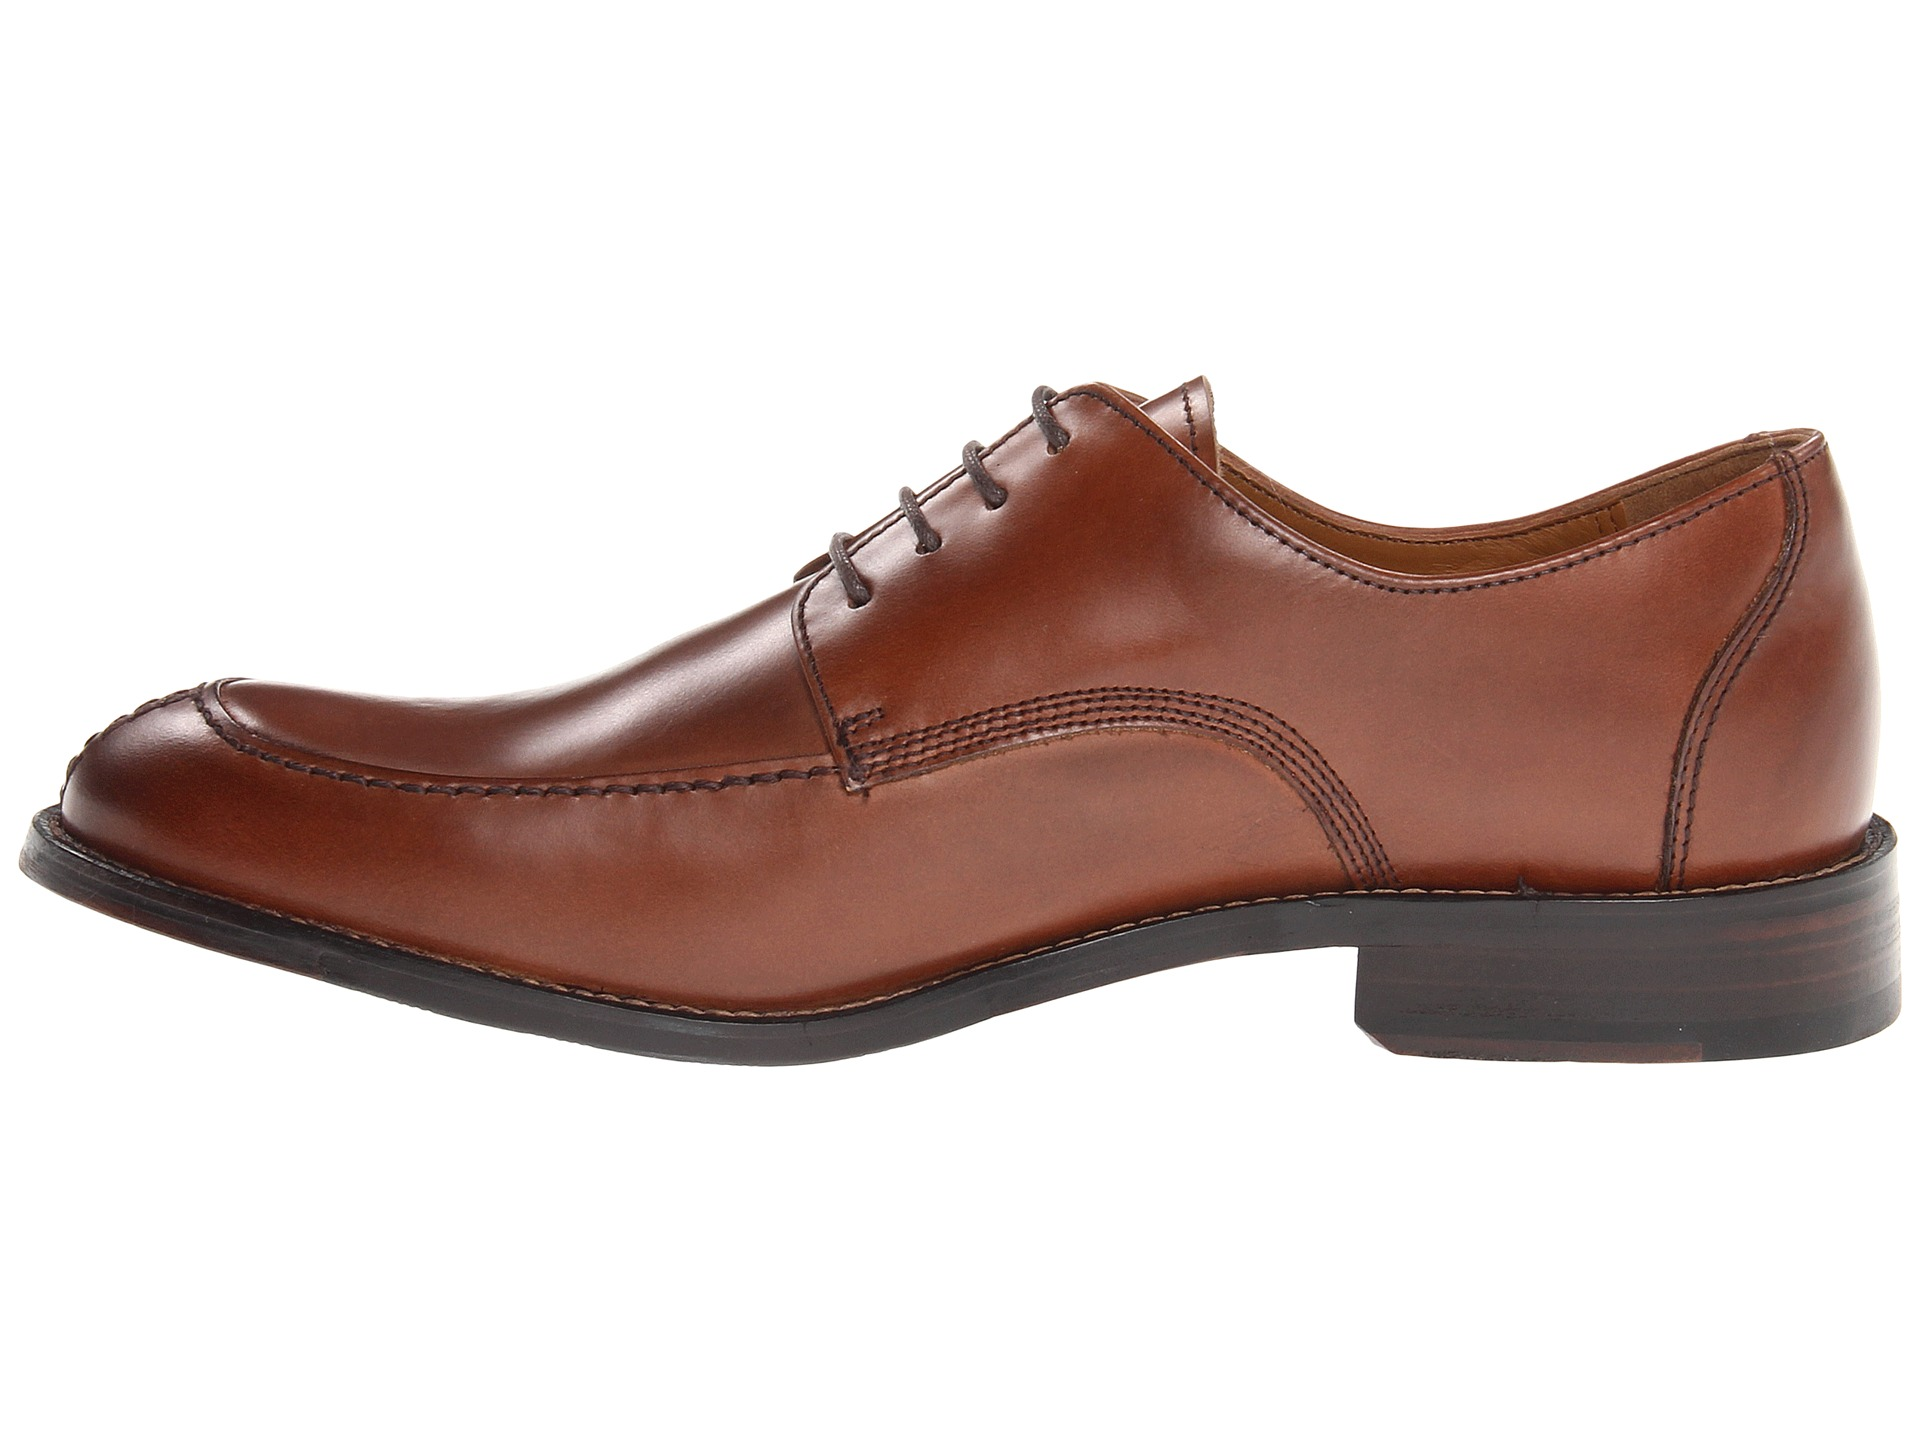 Johnston & Murphy shoes are the best. Definitely the most comfortable dress shoes and stylish boots I've ever owned. The quality is definitely worth the price as these shoes have lasted a very.